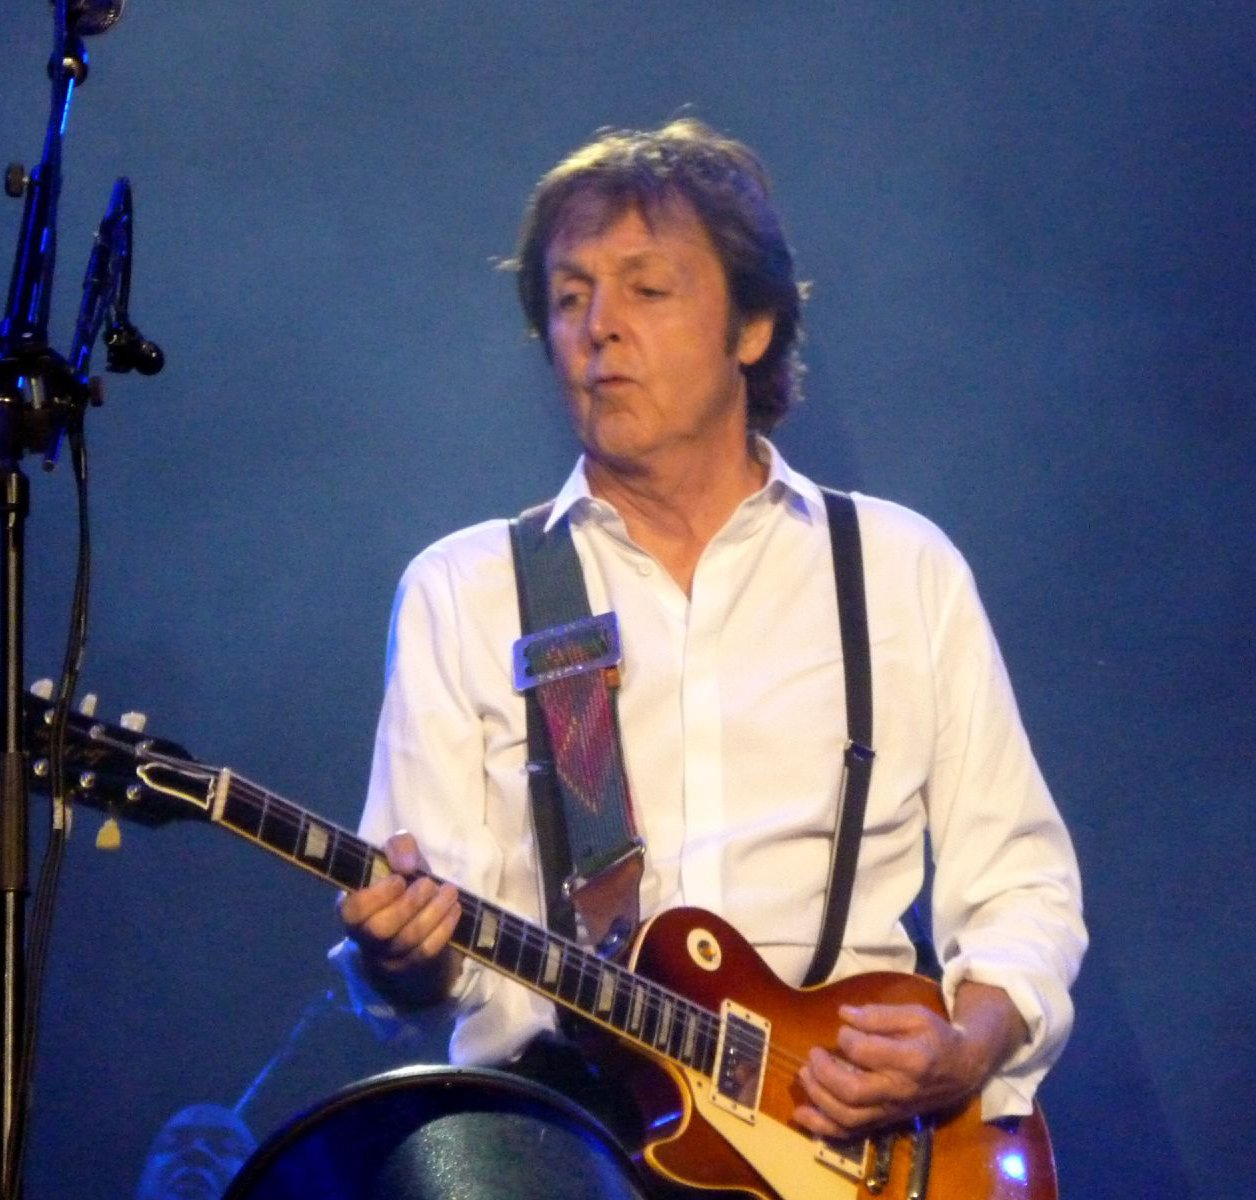 FilePaul McCartney Dublin 2010